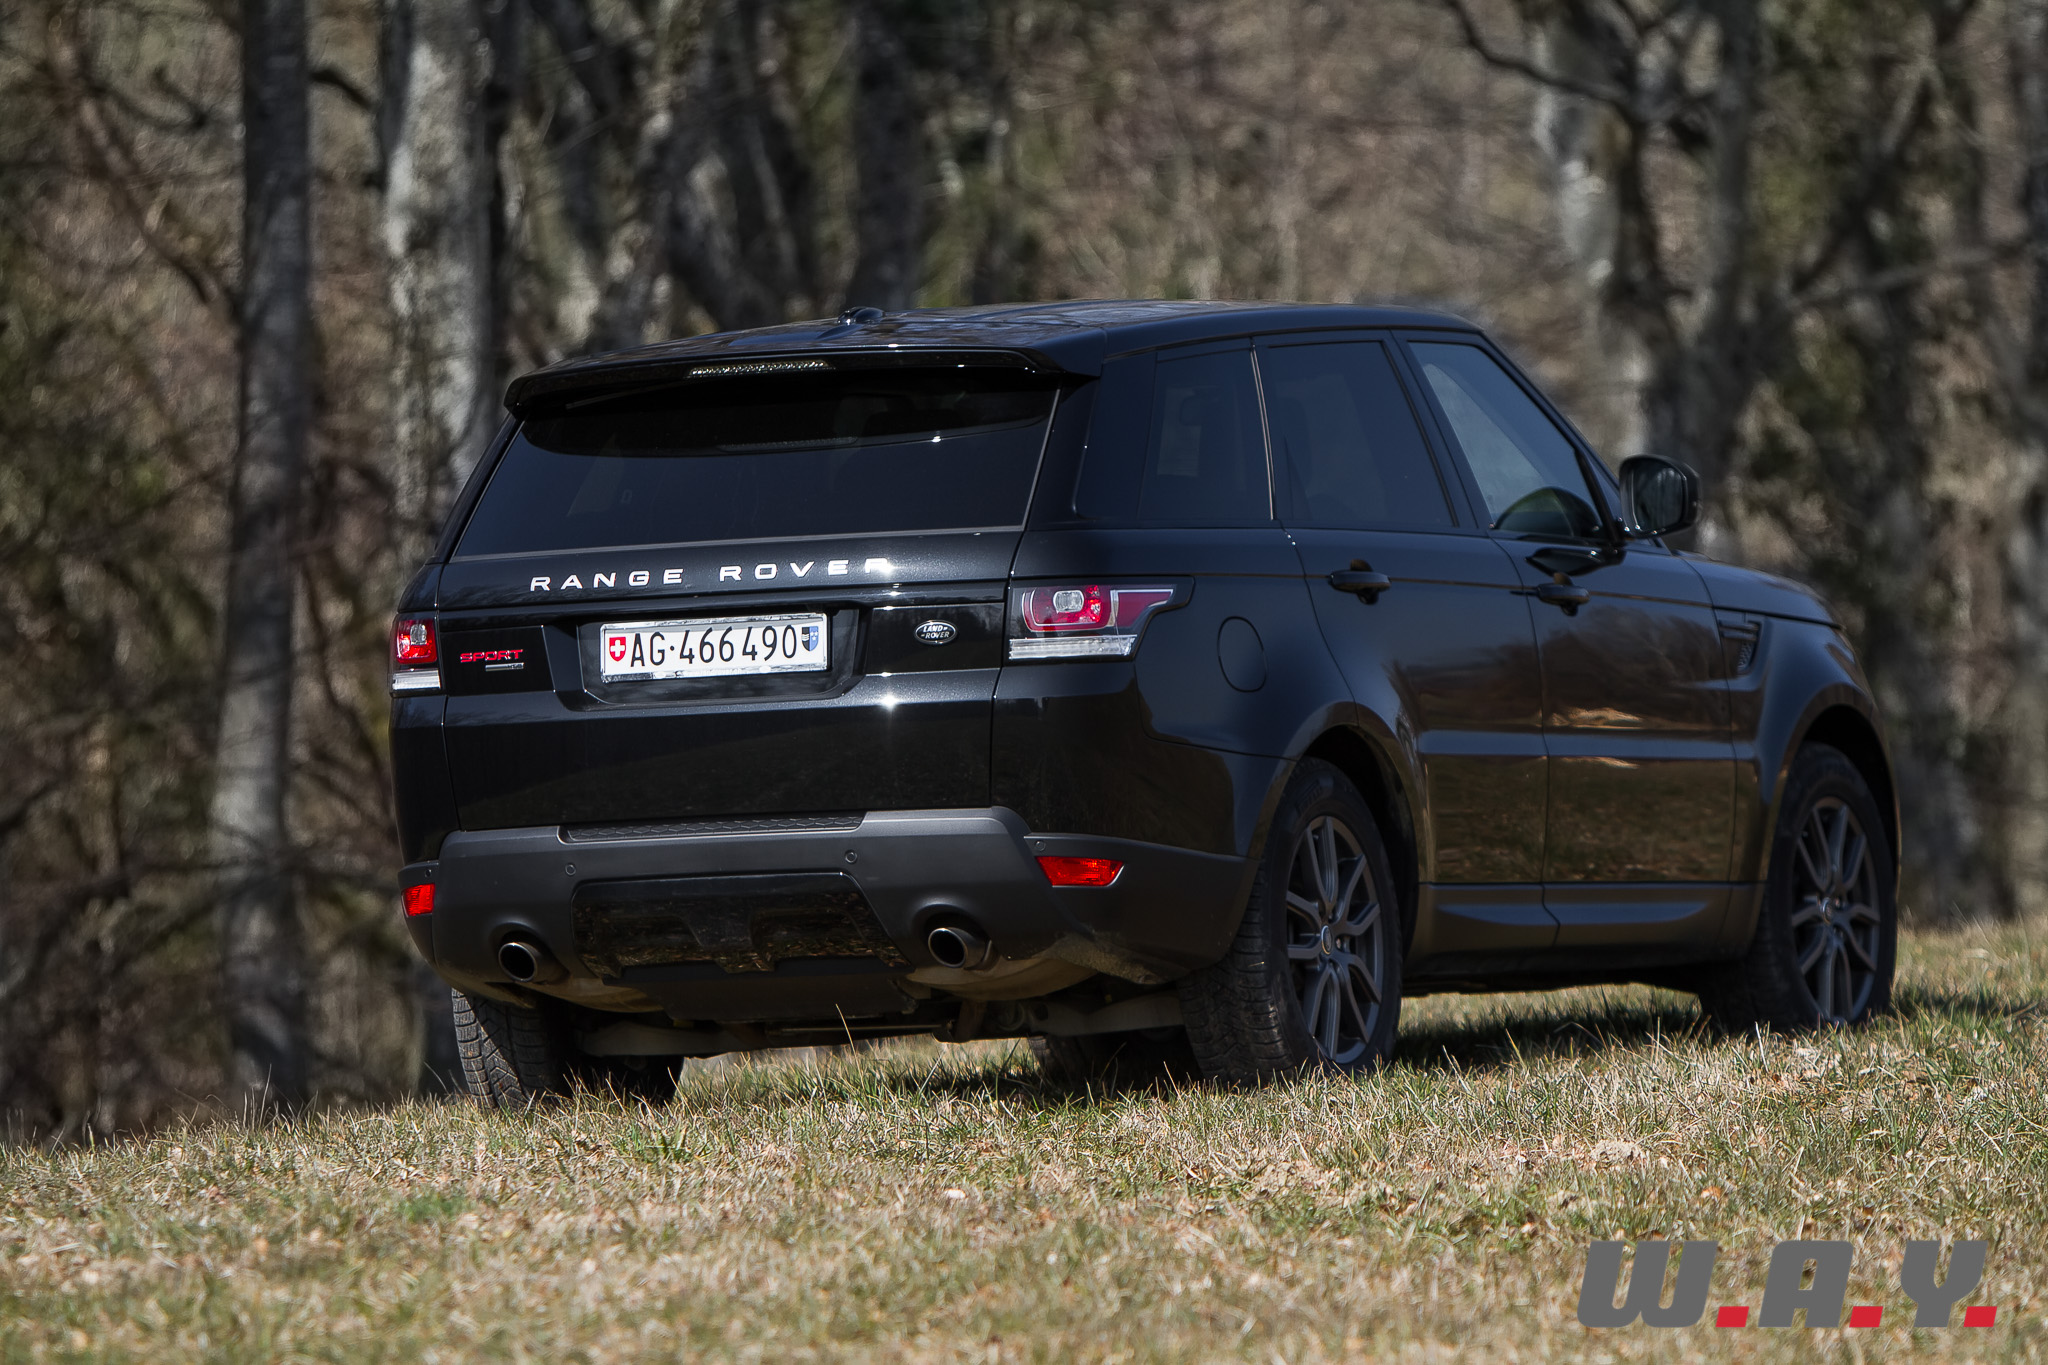 essai range rover sport v6 3 0 s c raffinement et sportivit wheels and. Black Bedroom Furniture Sets. Home Design Ideas